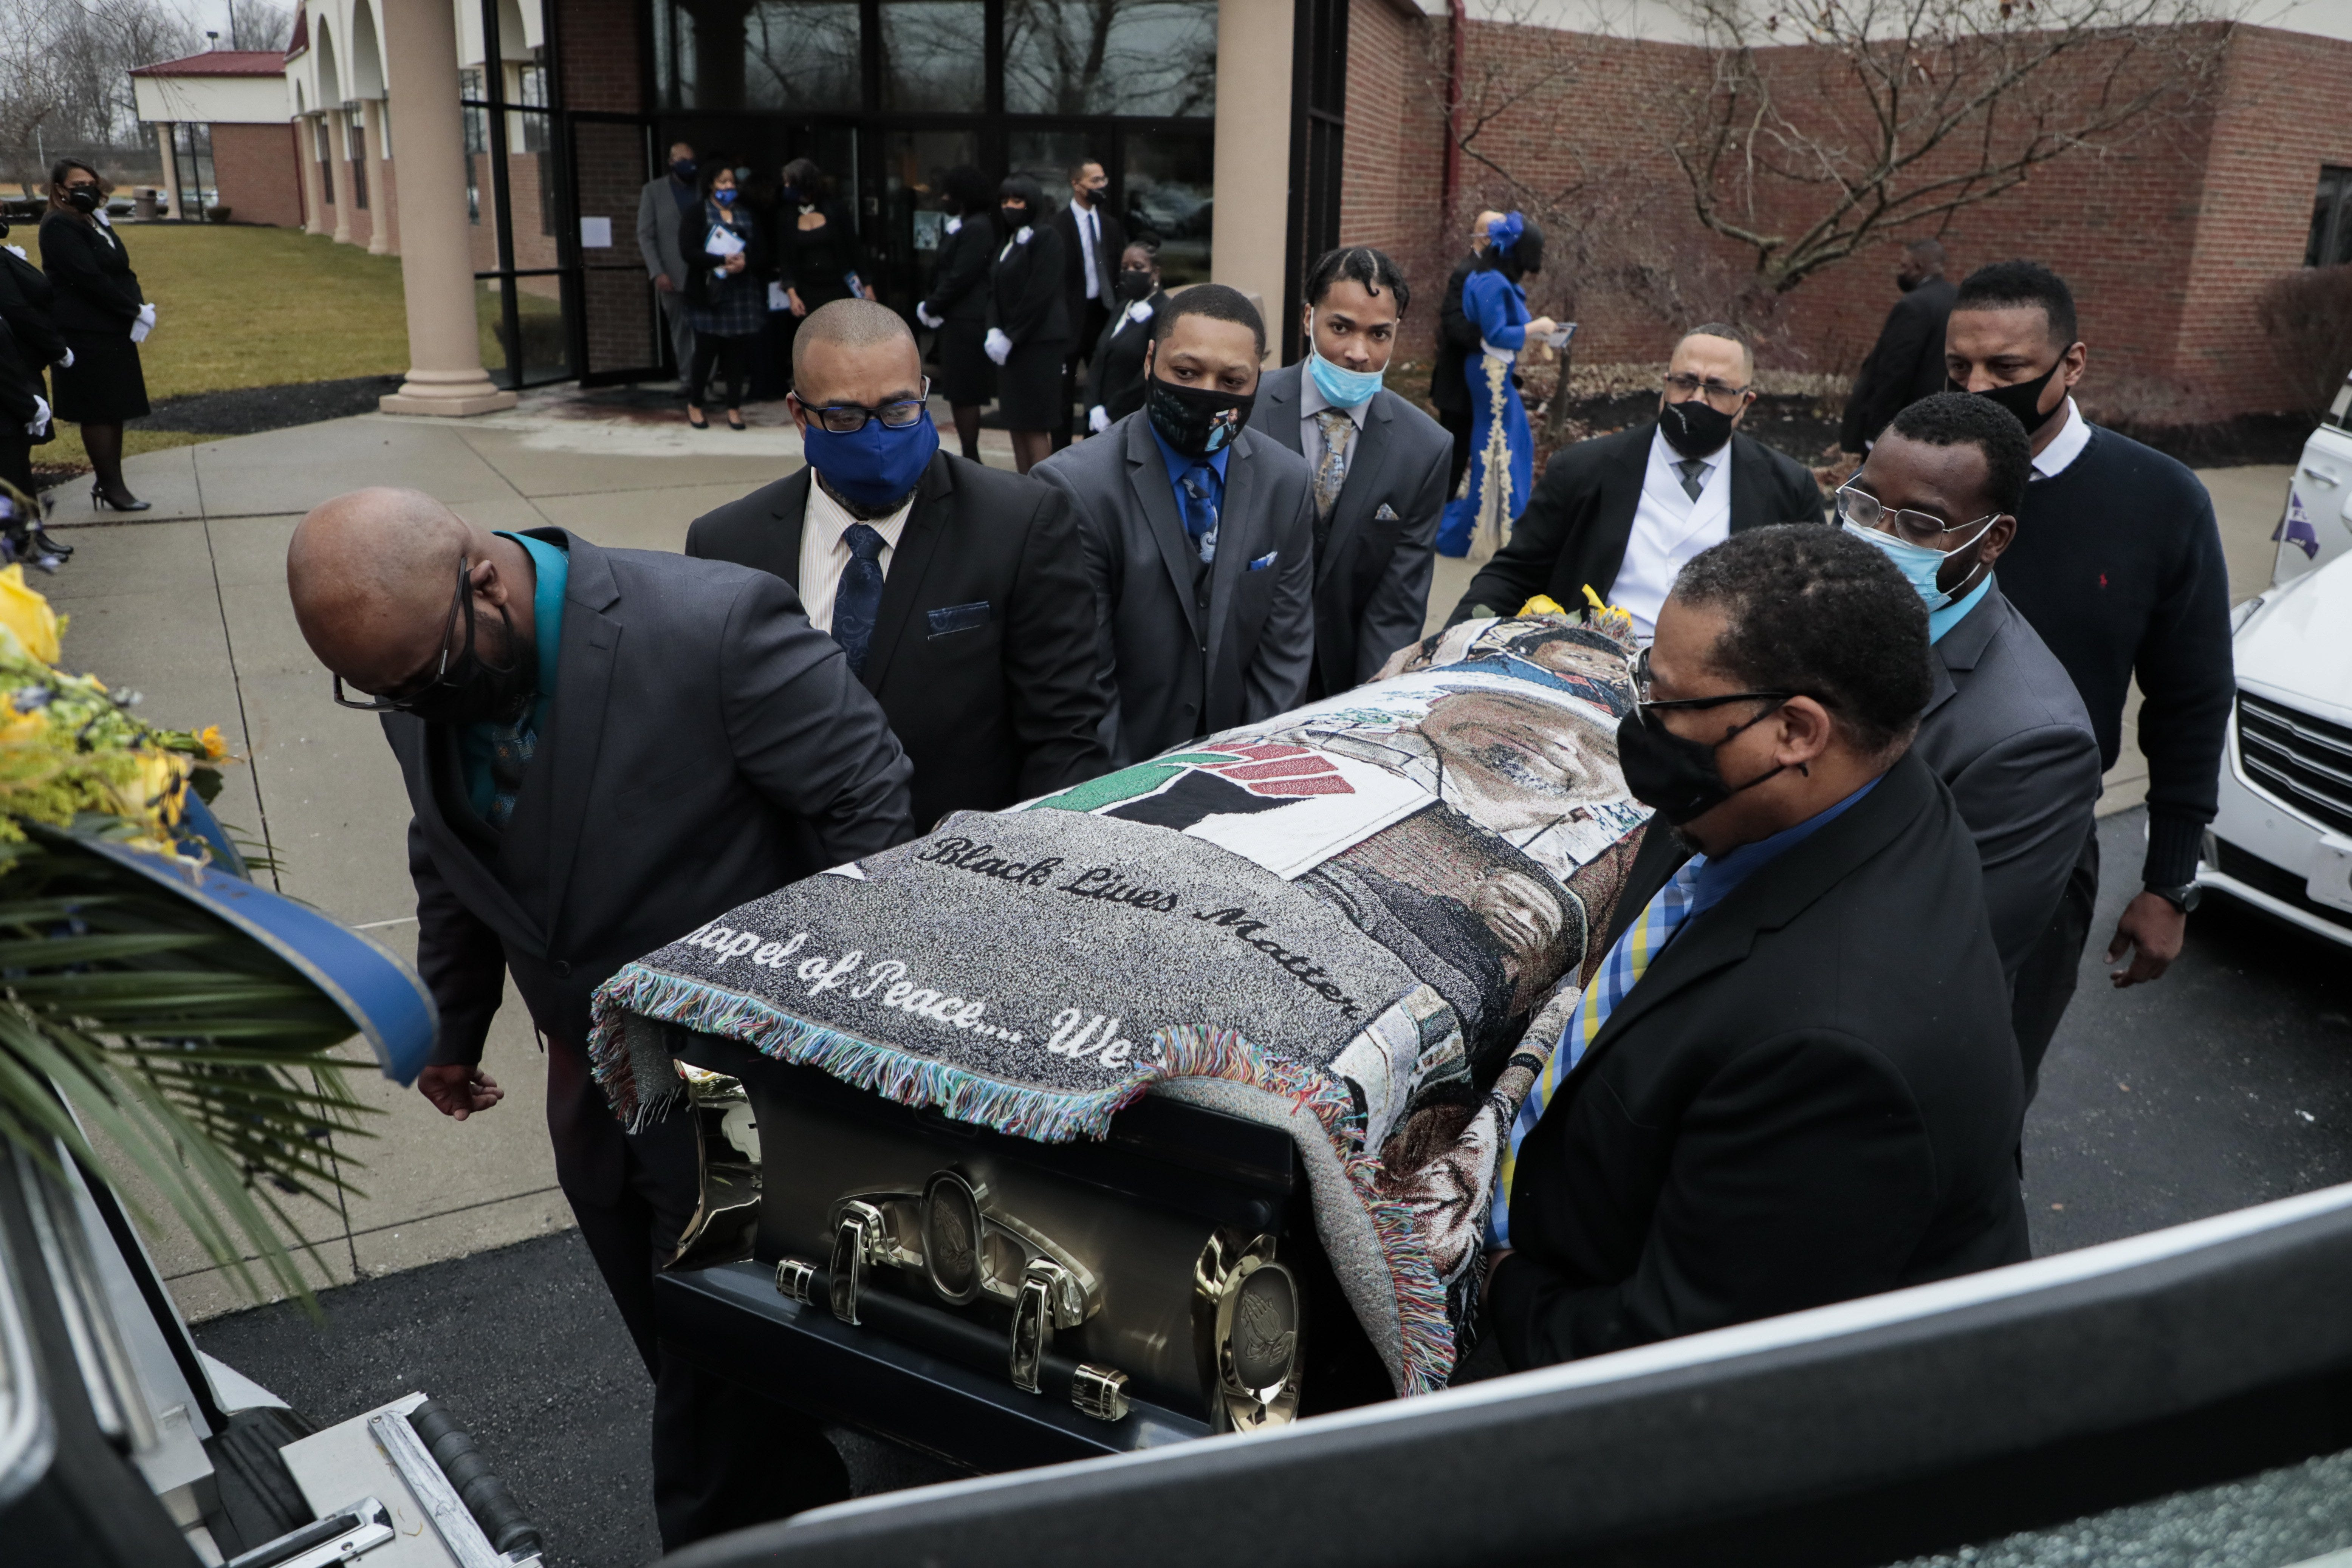 Autopsy shows Andre Hill, an unarmed Black man, was fatally shot 4 times by former Columbus police officer